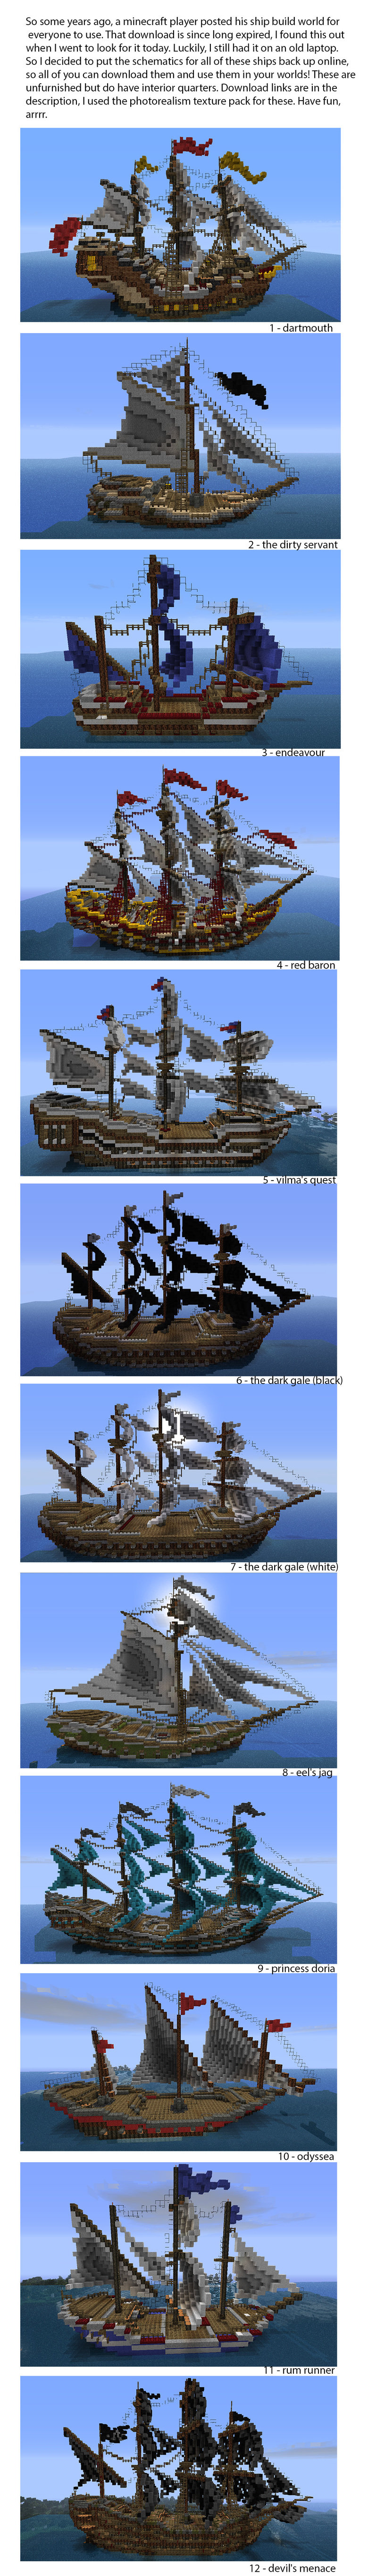 Minecraft Ships. Here are the download links, in order. 1. Dartmouth http://adf.ly/URajt 2. The Dirty Servant http://adf.ly/URasB 3. Endeavour http://adf.ly/URa